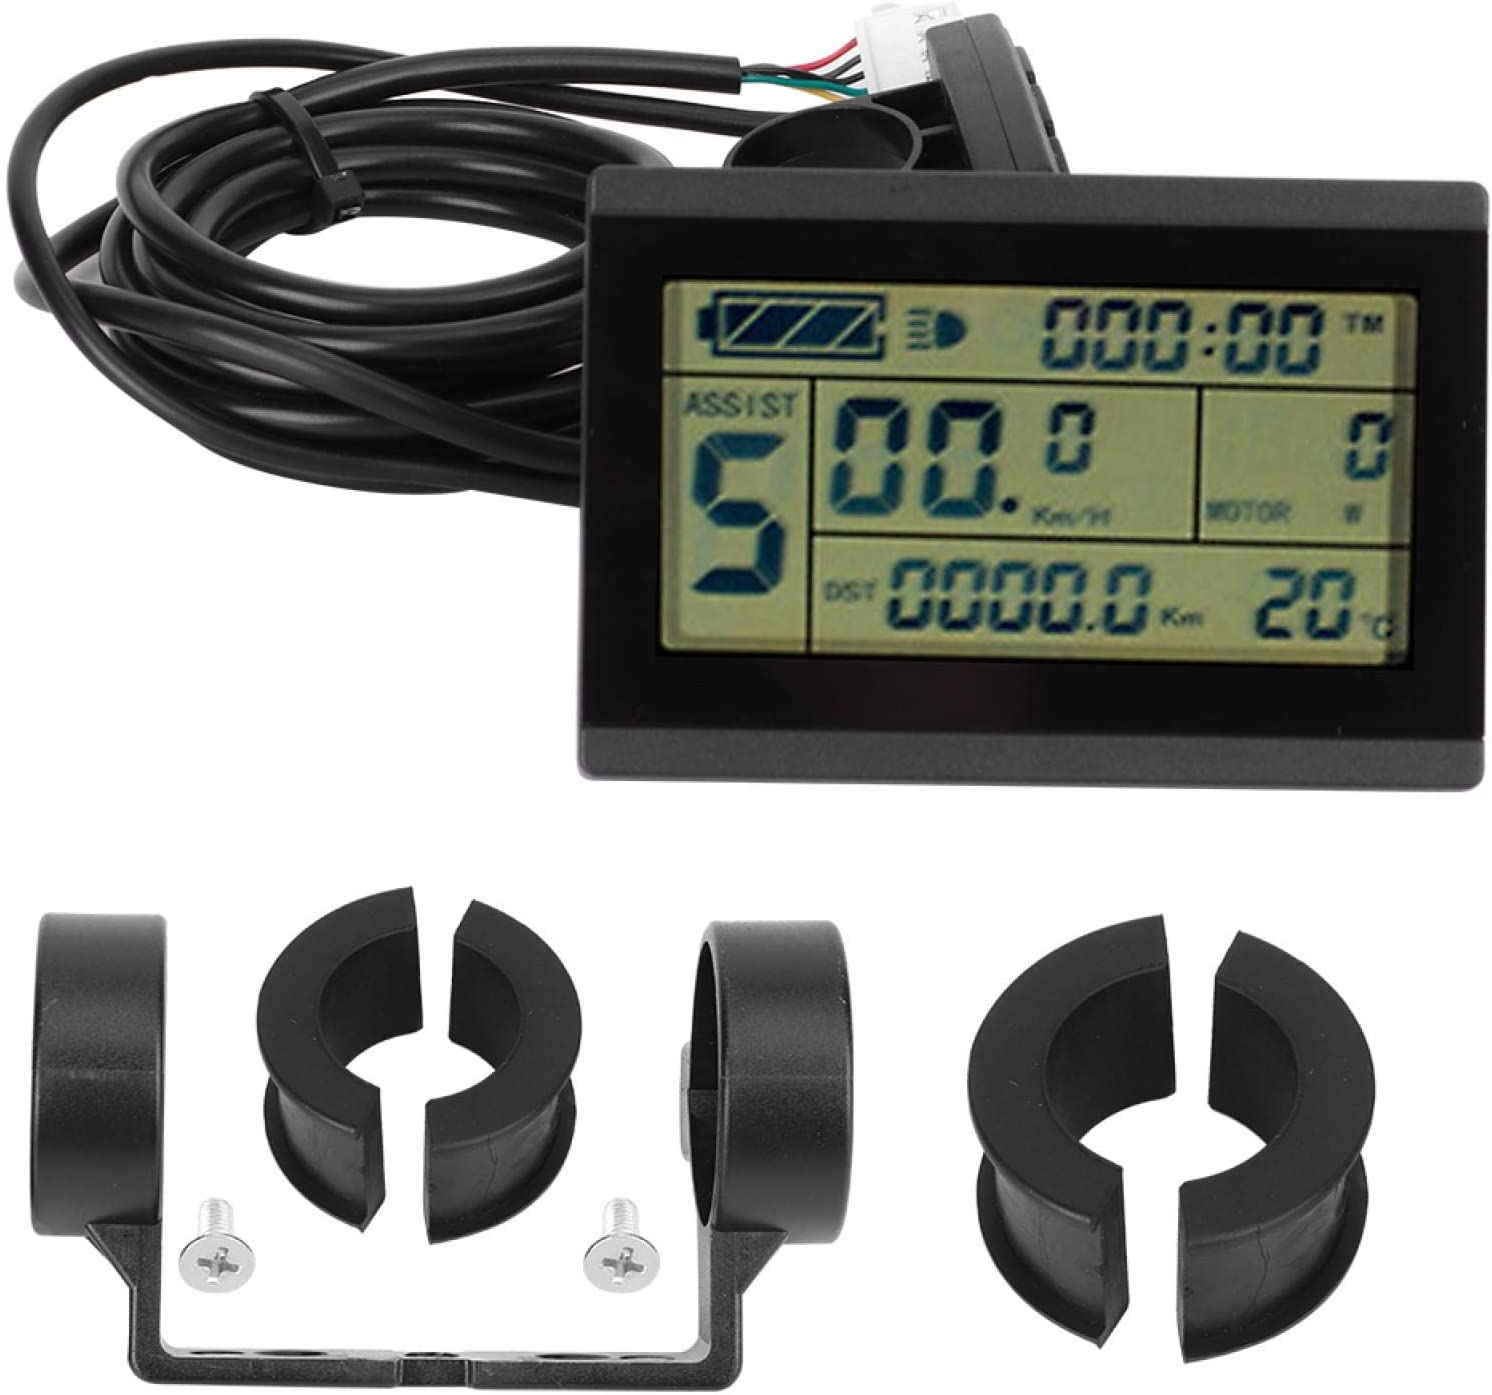 Deror E‑Bike LCD Instrument KT‑LCD3U Free shipping anywhere Limited time trial price in the nation Bike H Conversion